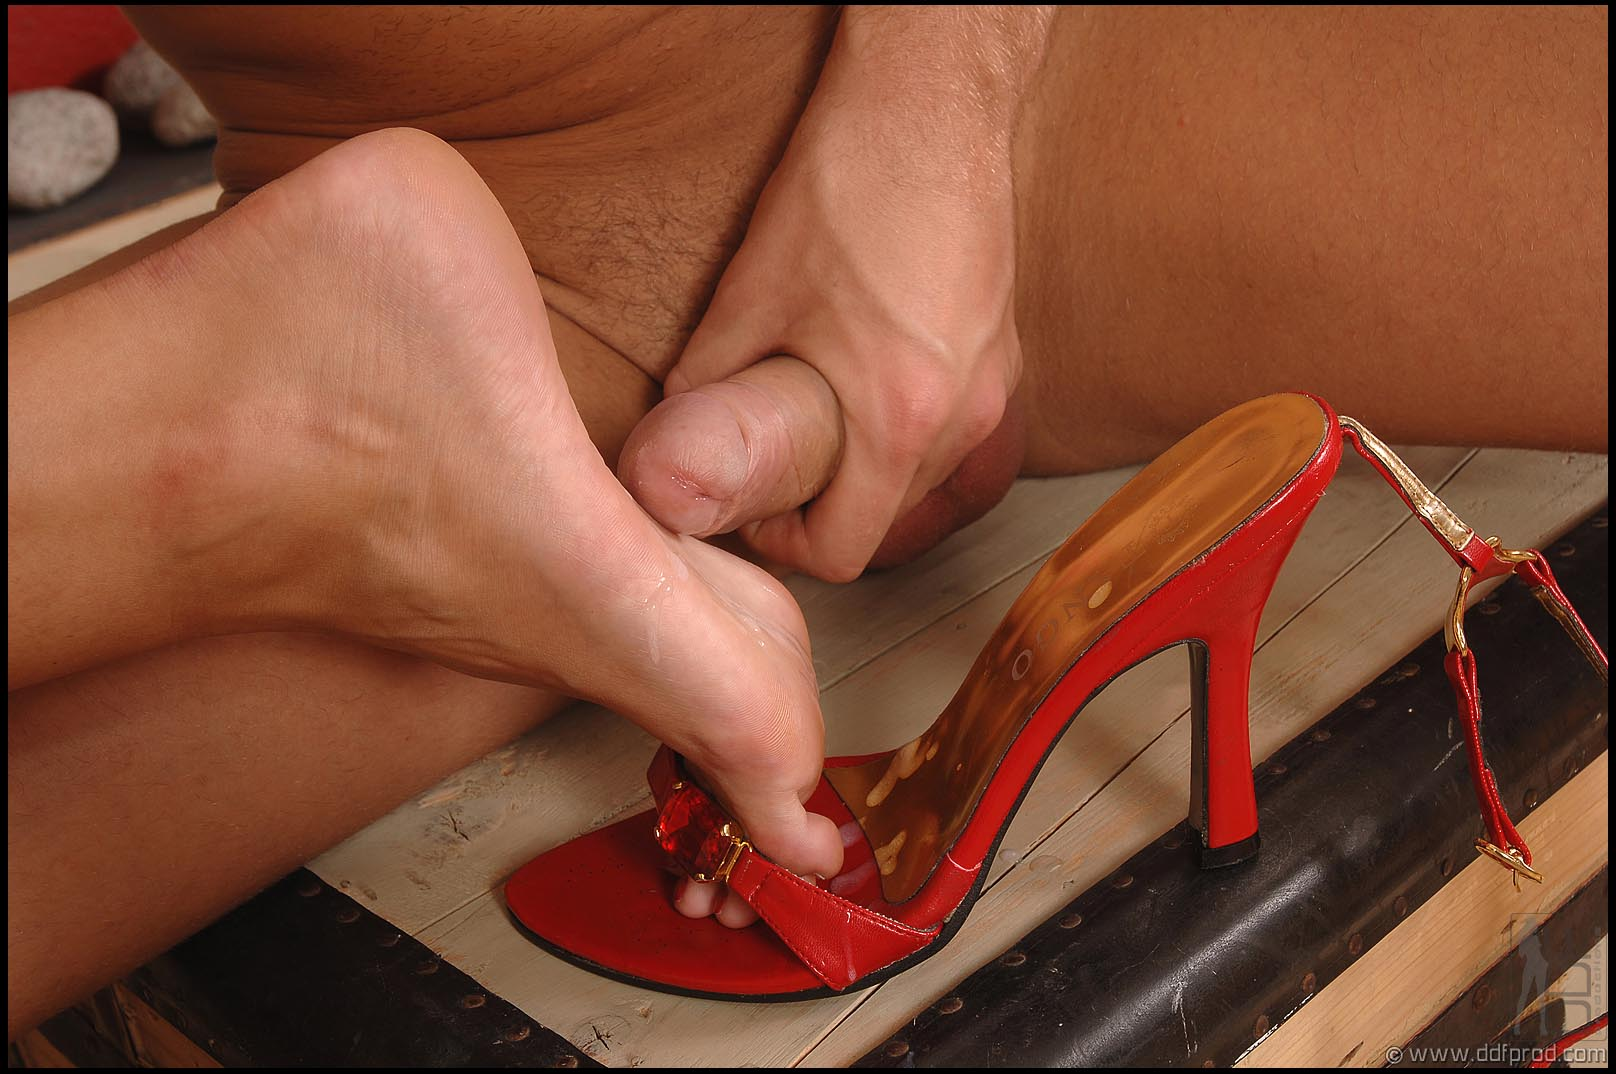 High heel job cum on shoe 3